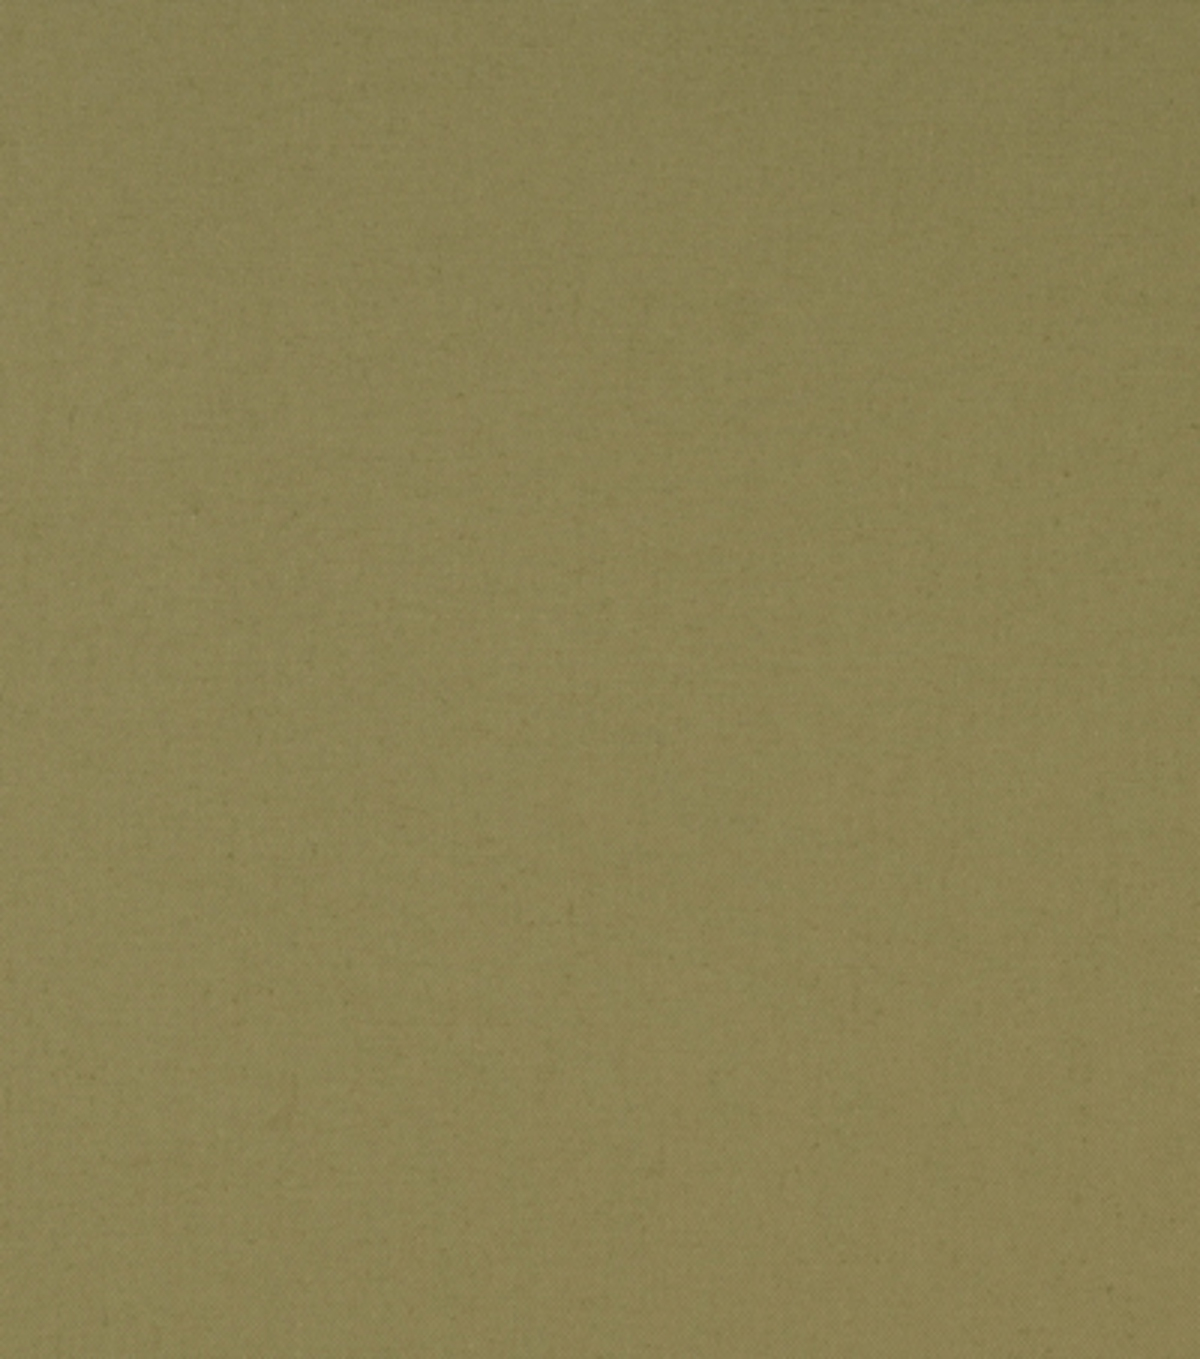 Home Decor 8\u0022x8\u0022 Fabric Swatch-Covington Melrose 110 Stonewash